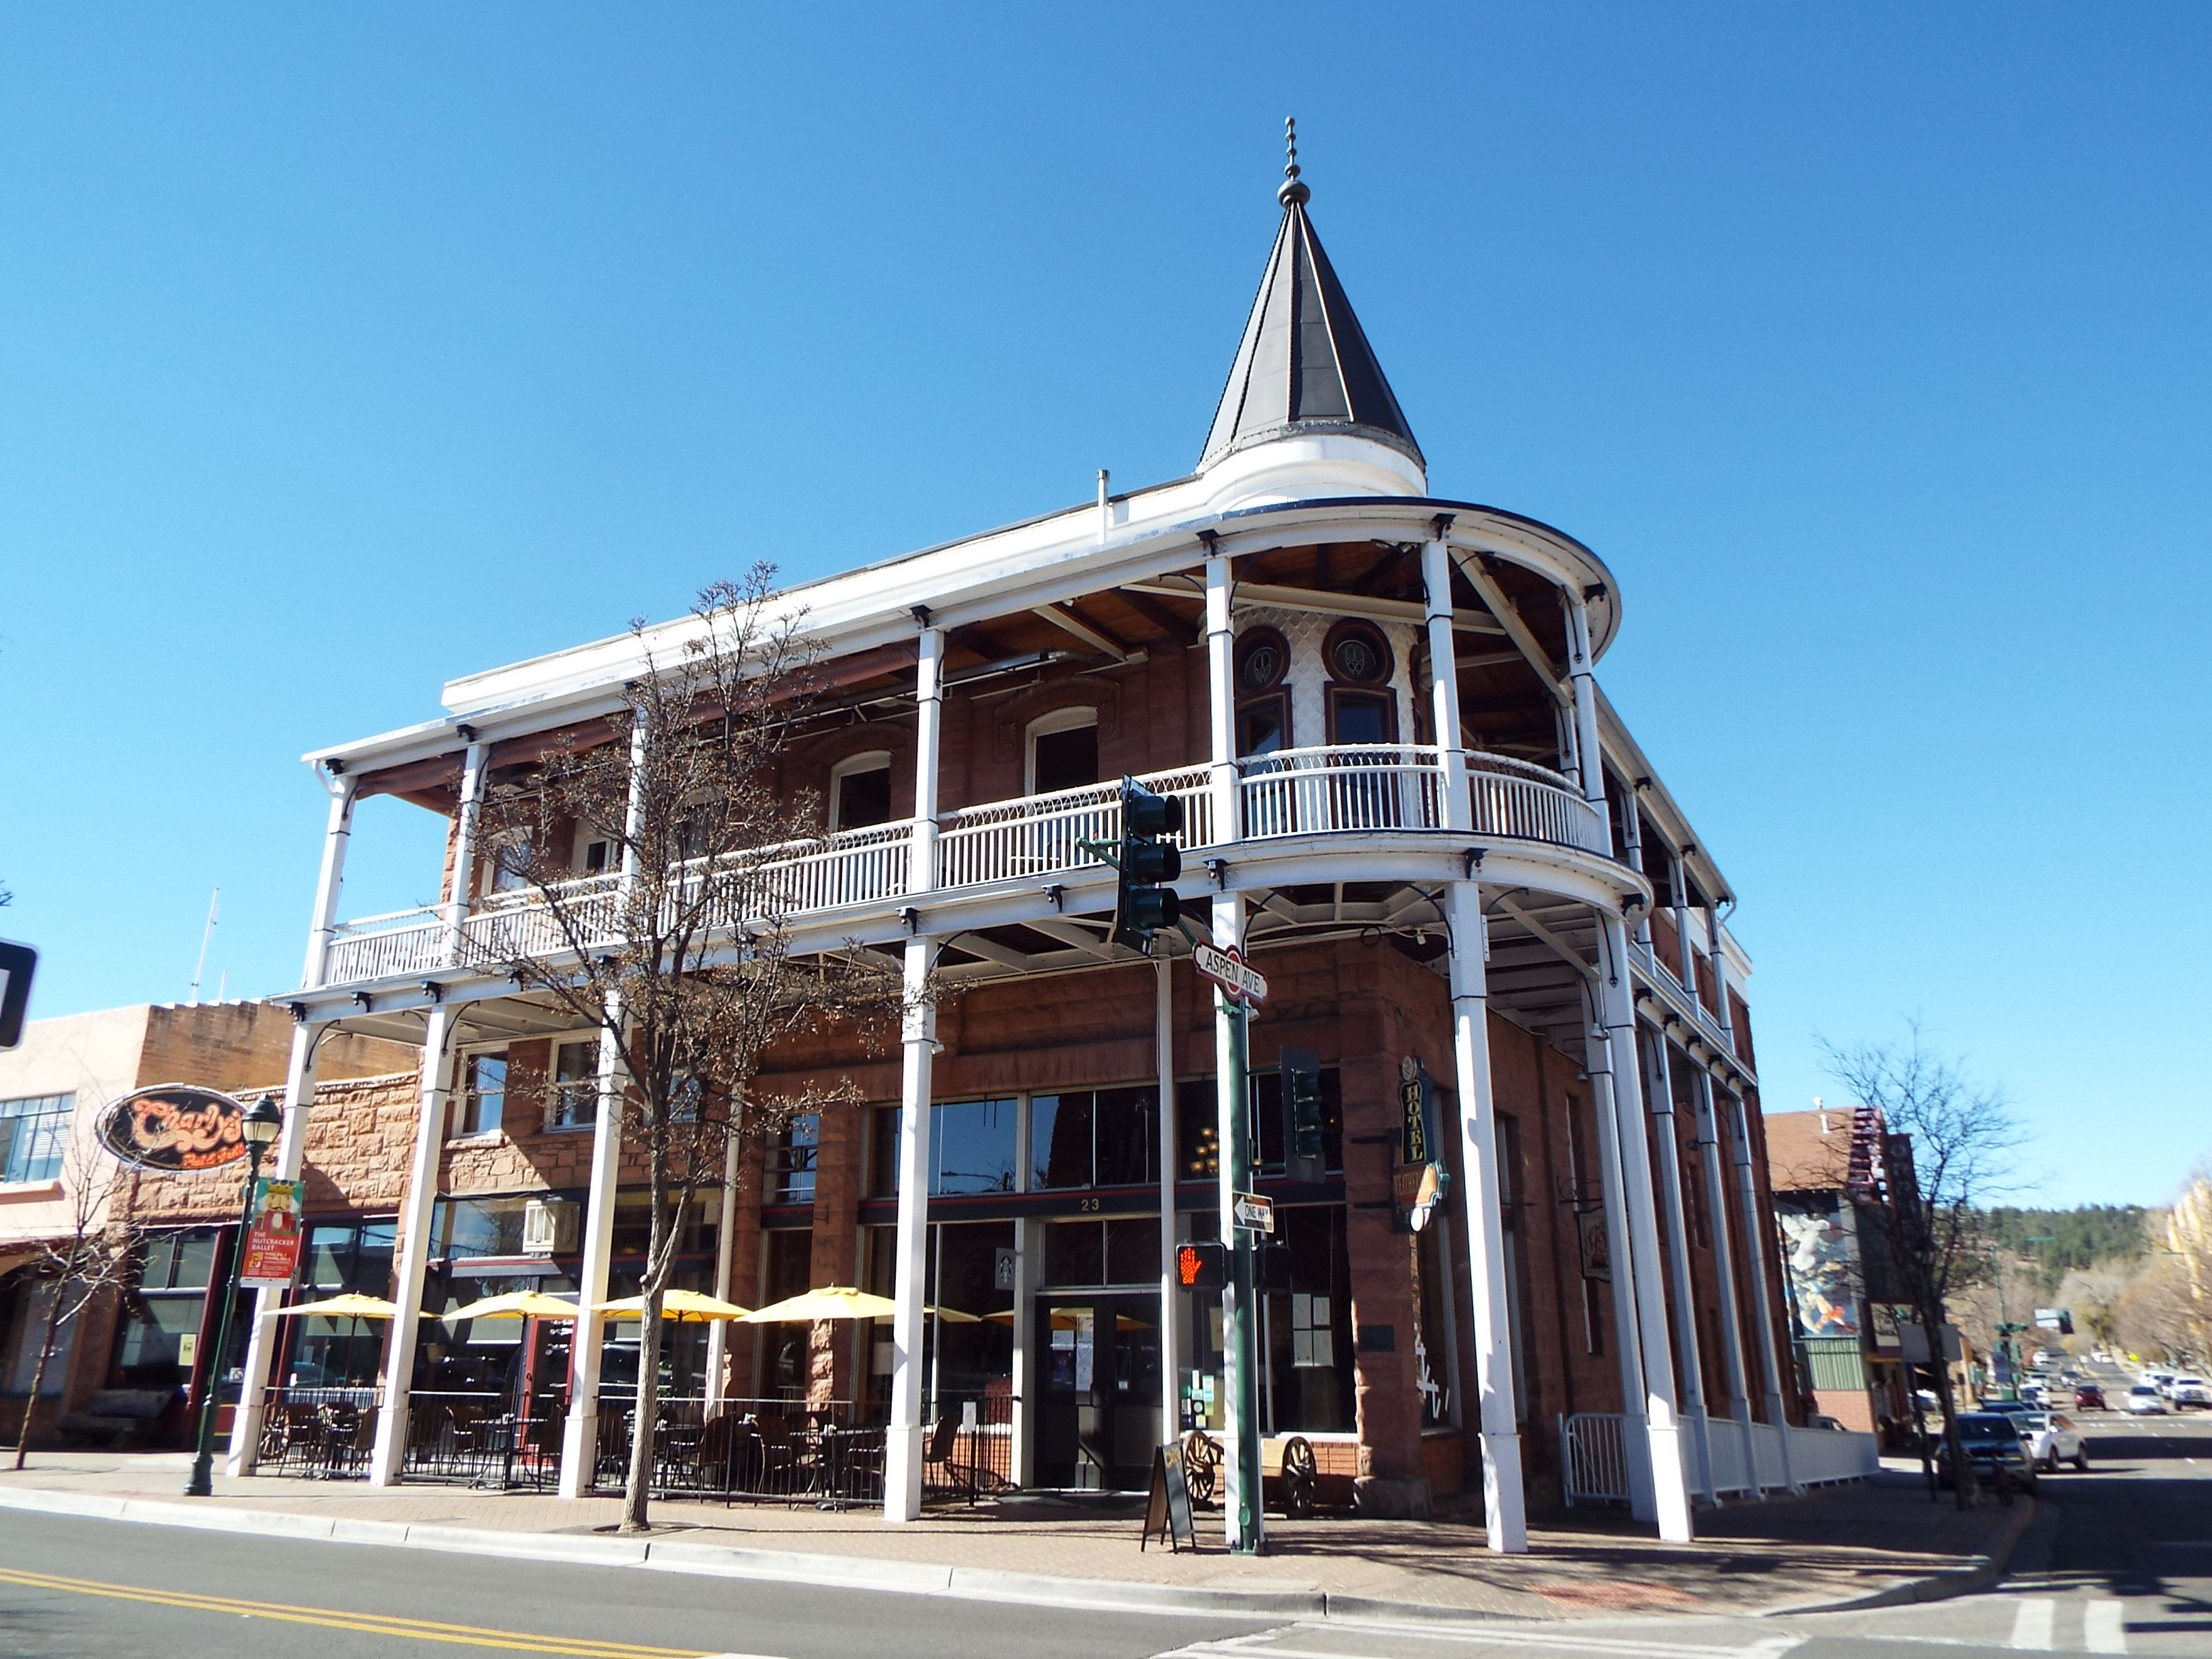 The Weatherford Hotel List of historic properties